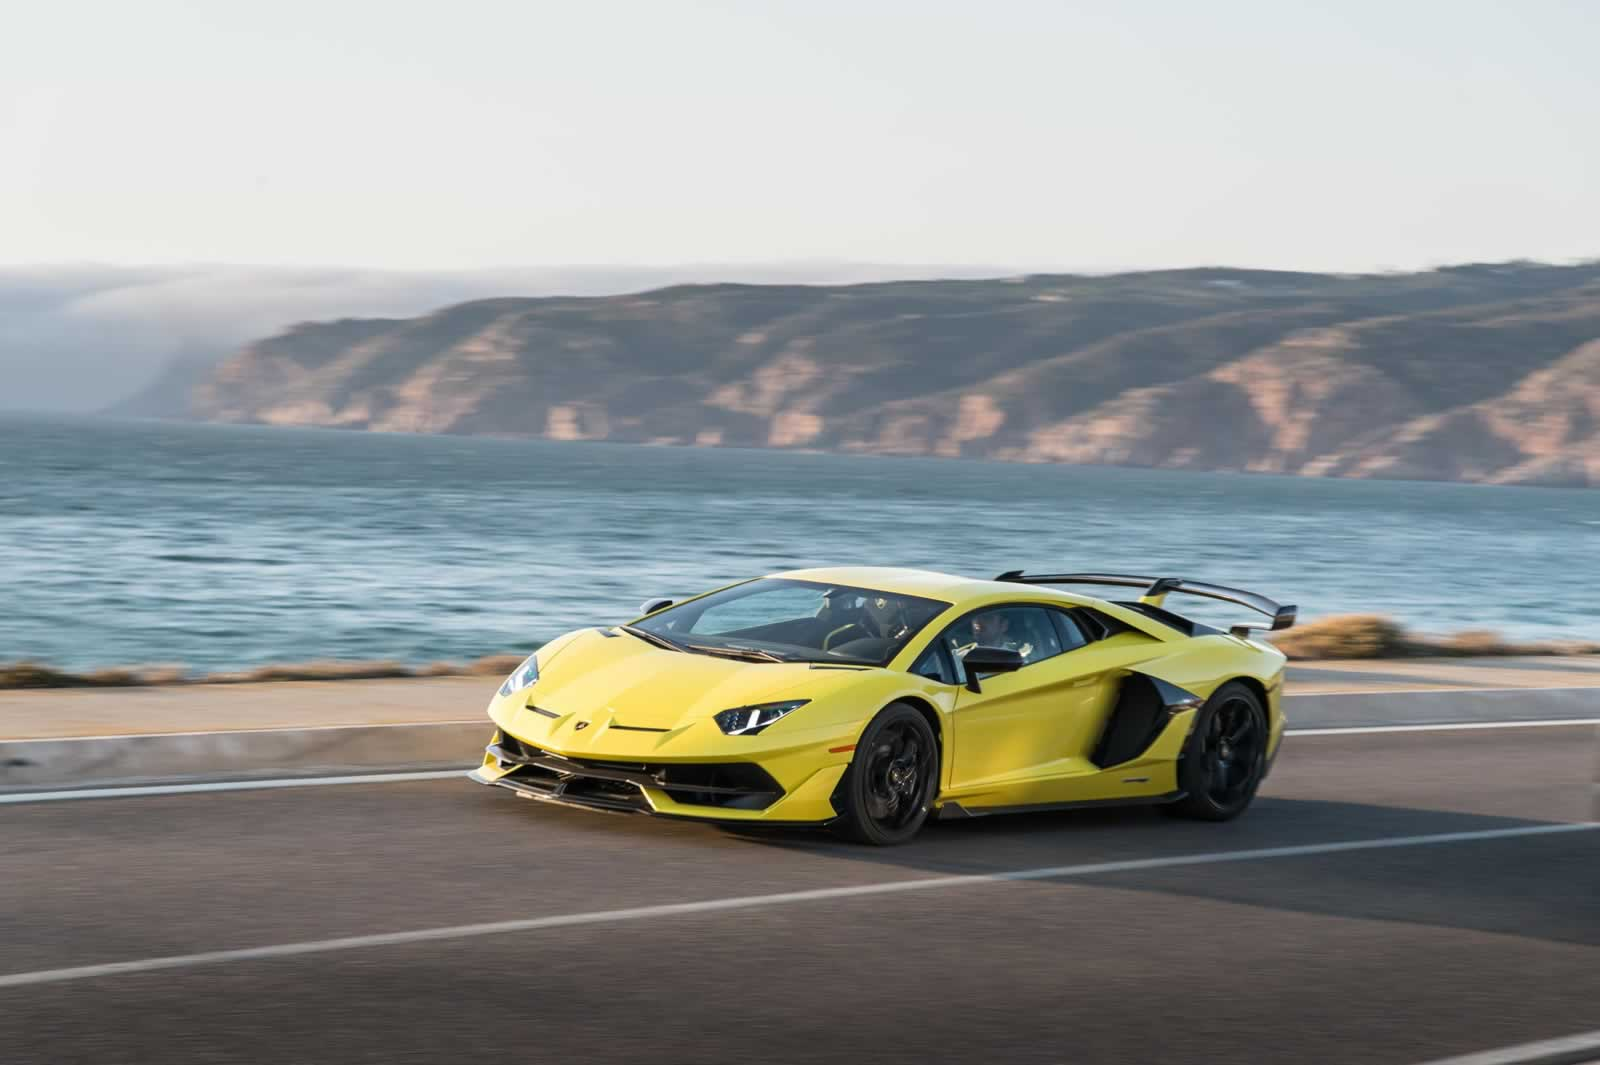 What pandemic? In its 57 year history Lamborghini has posted its best September ever by delivering 738 cars in one month